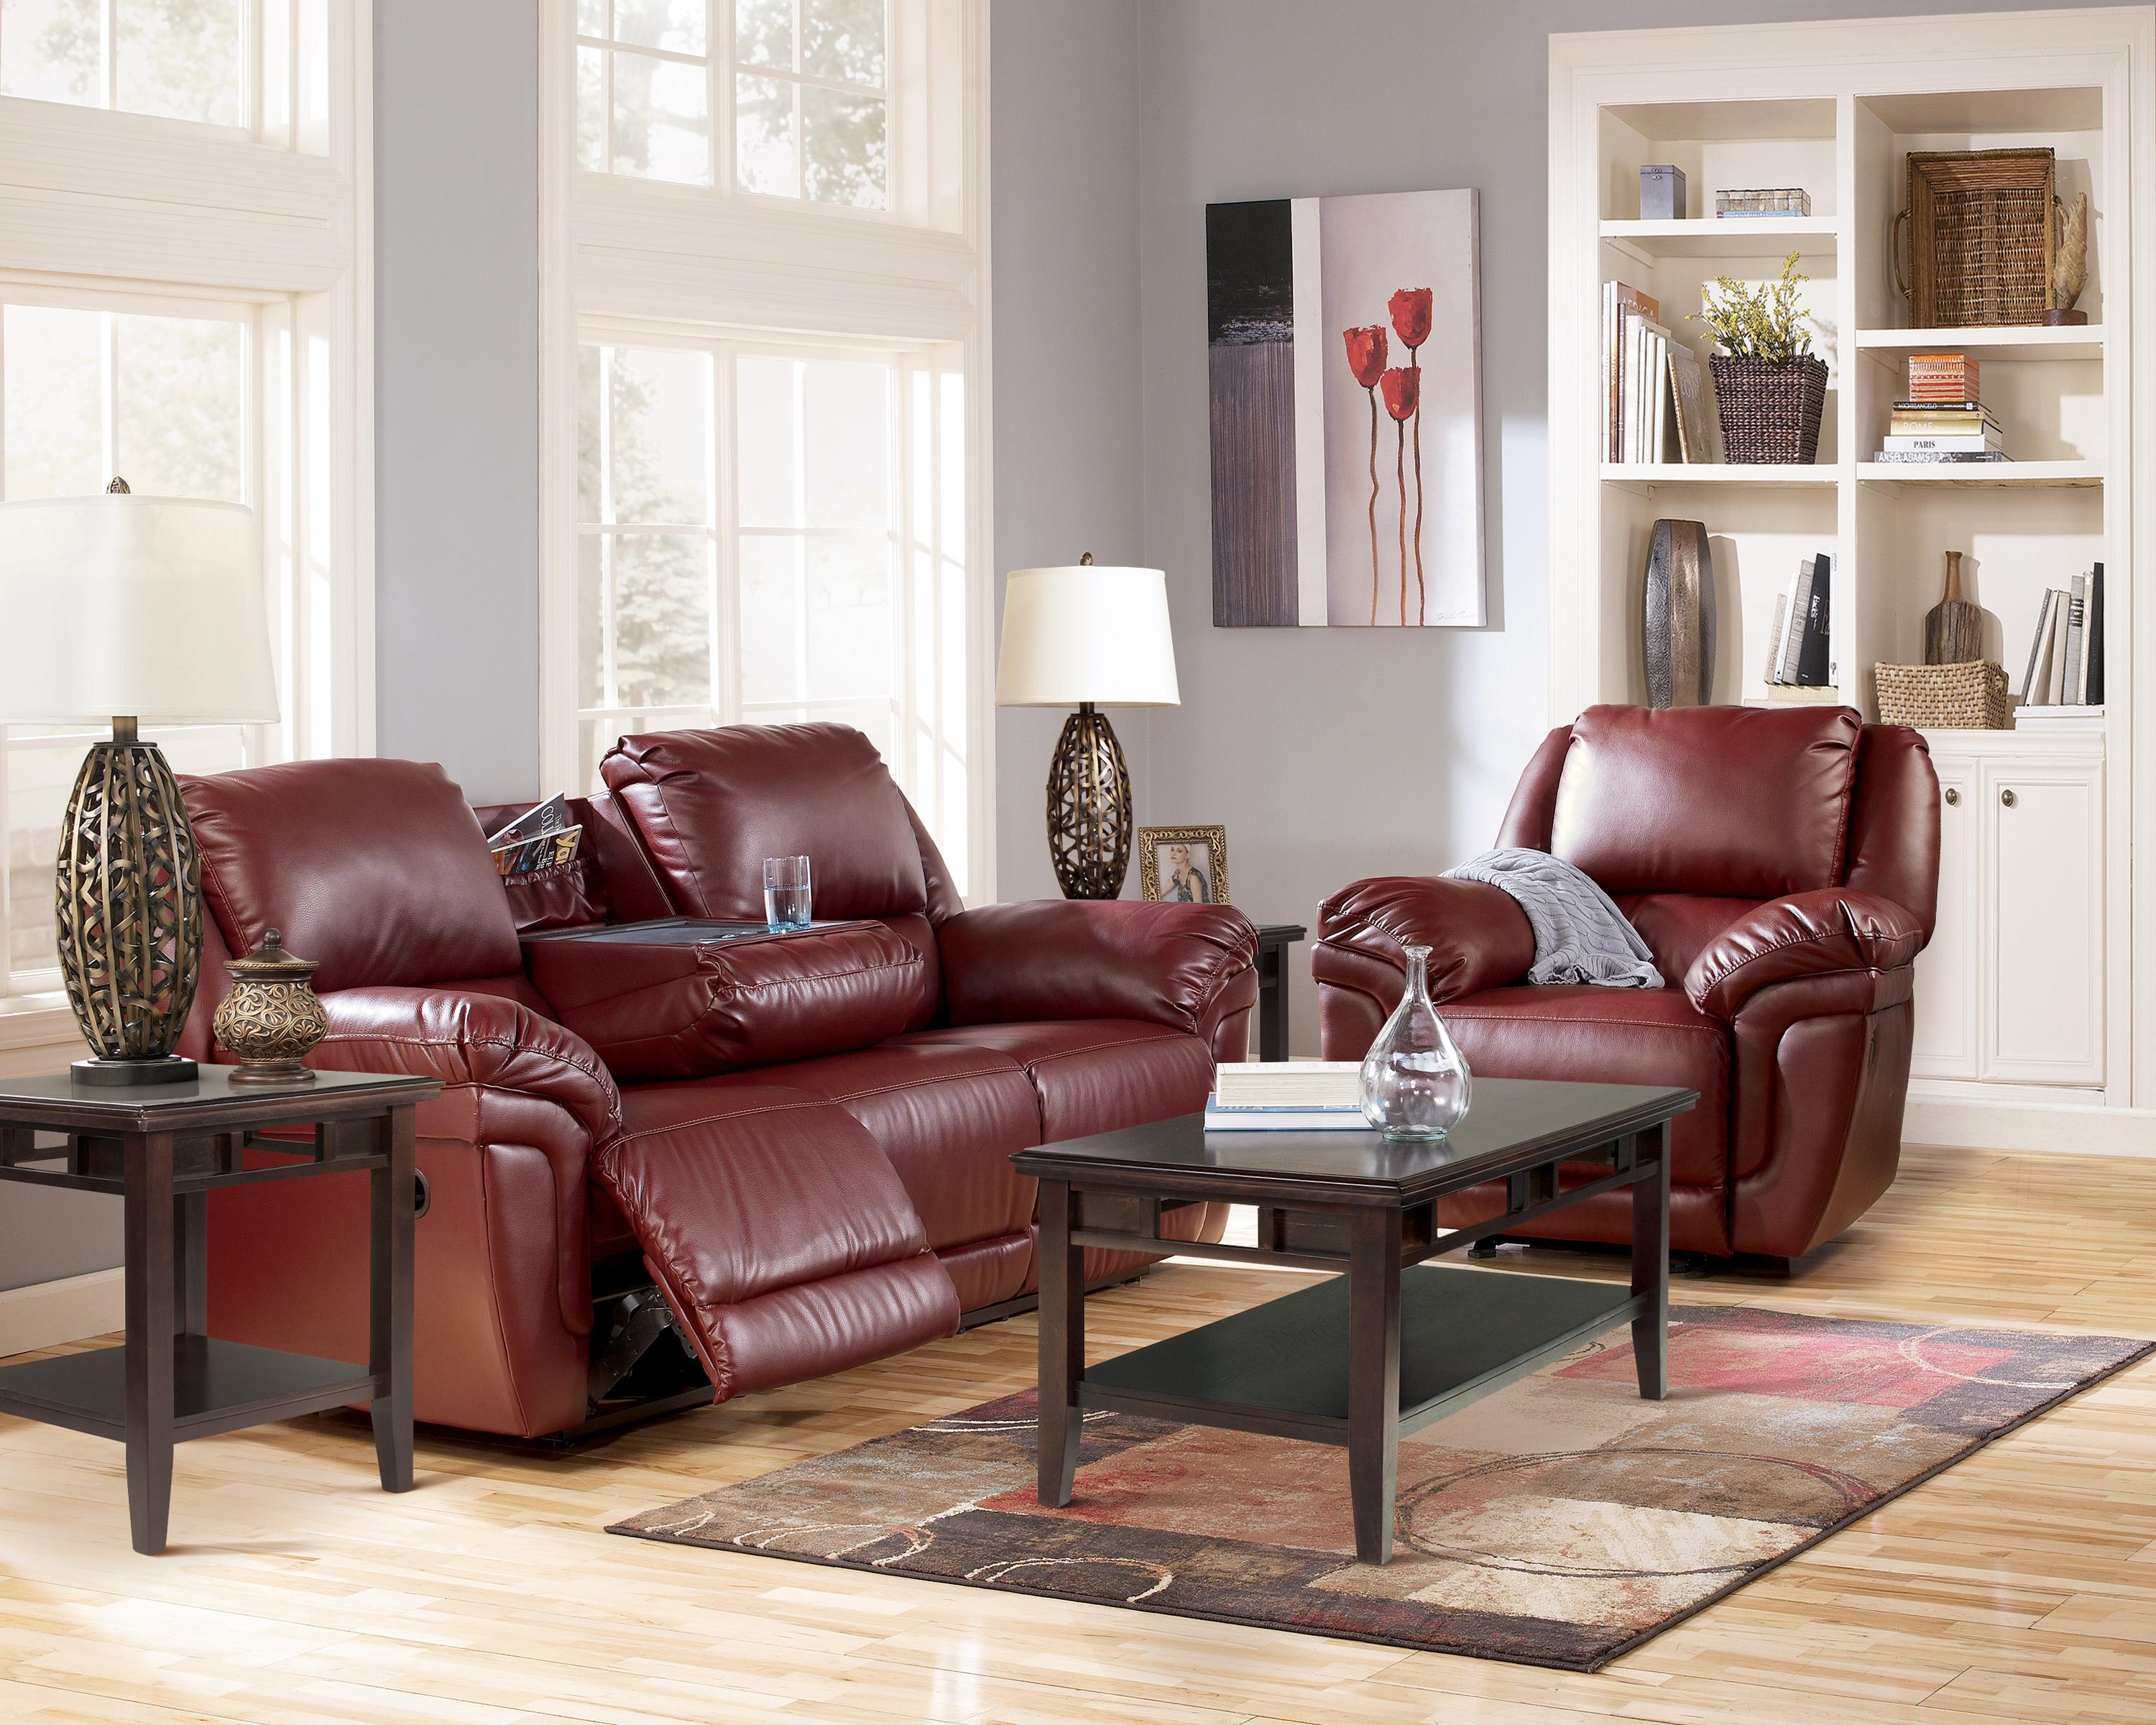 Signature Design by Ashley Magician DuraBlend - Garnet Reclining Living Room Group - Item Number: 76100 Living Room Group 3